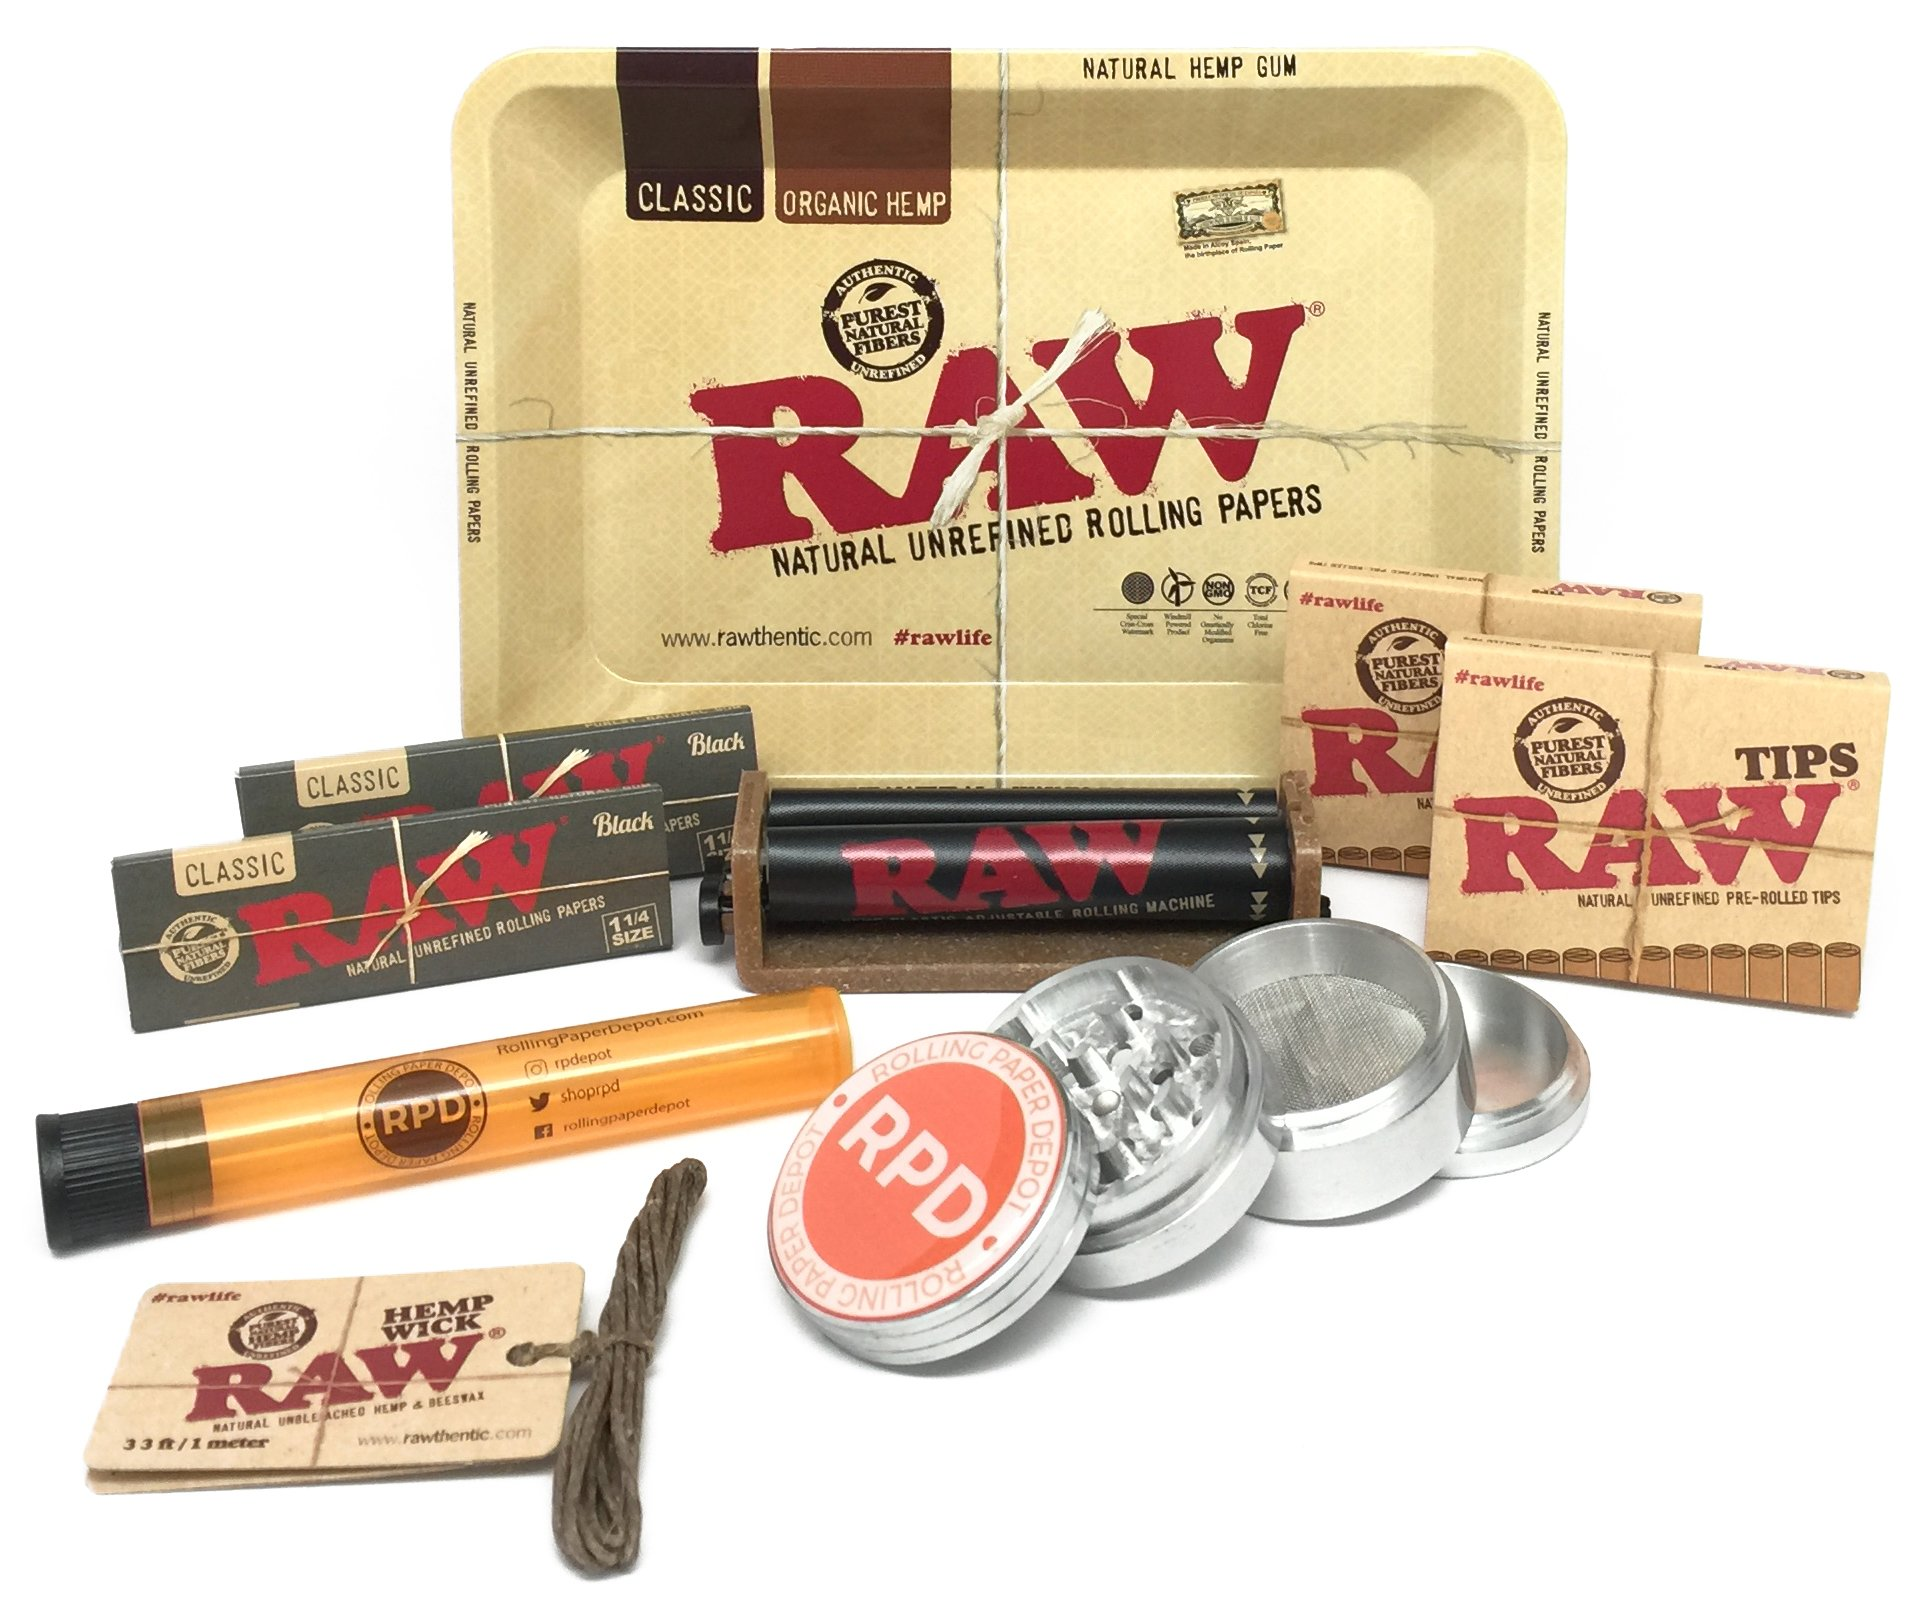 Bundle - 9 Items - RAW Black Rolling Paper, Pre-Rolled Tips, Mini Rolling Tray, Roller and Hemp wick with RPD Grinder and Doob Tube